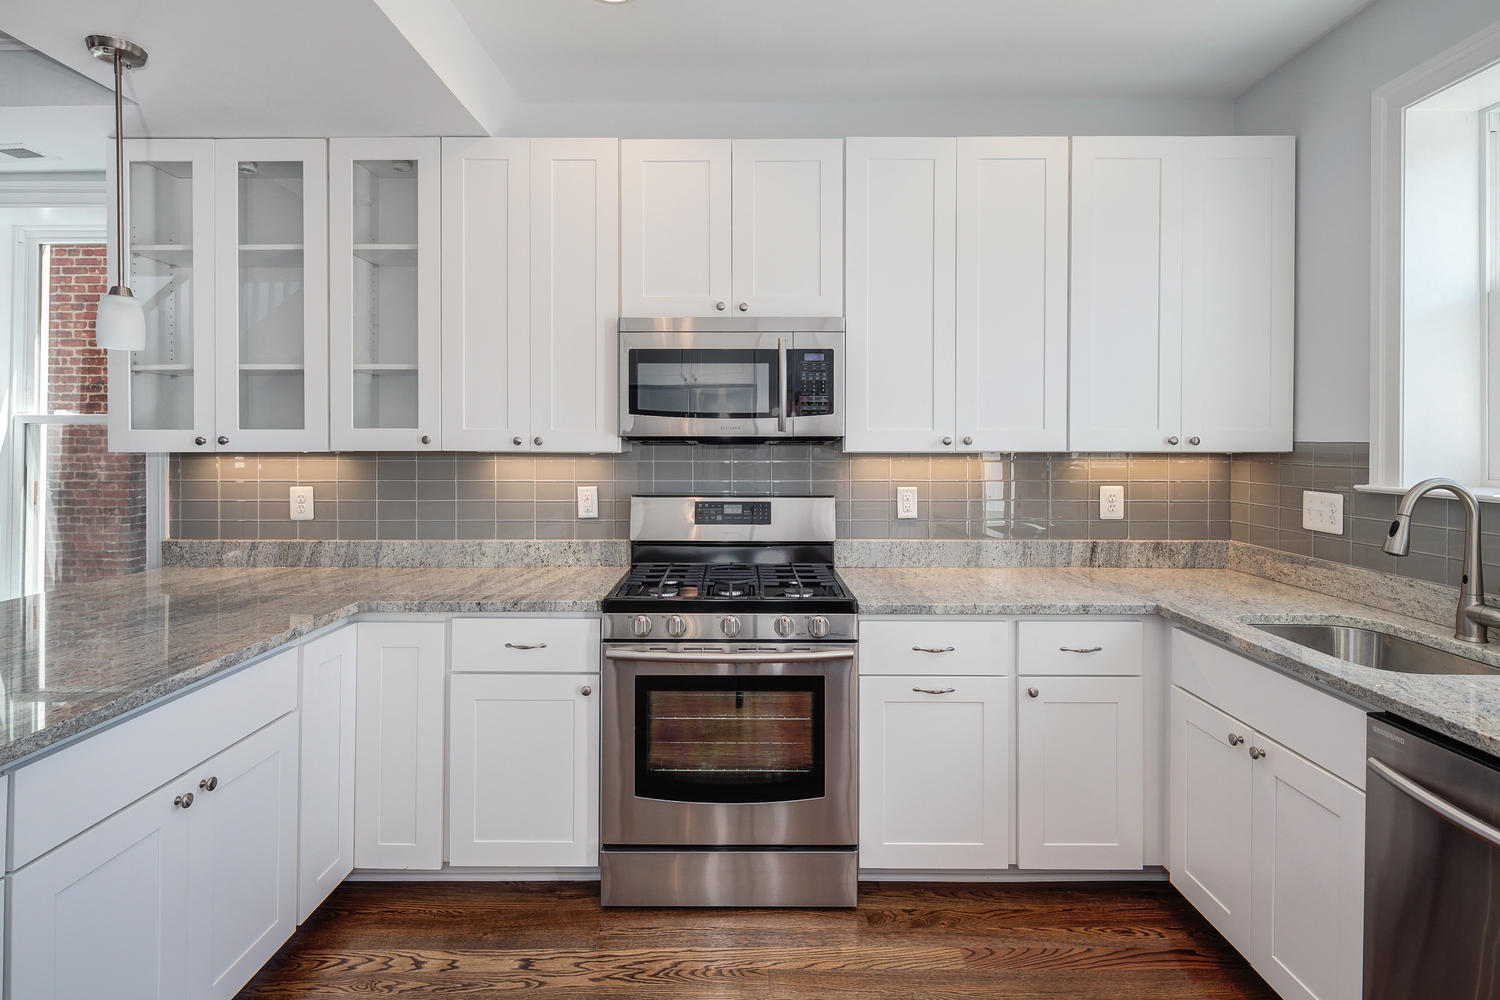 The Simple Kitchens with White Cabinets and Grey Tile Backsplash on Marble Countertop under White Ceiling